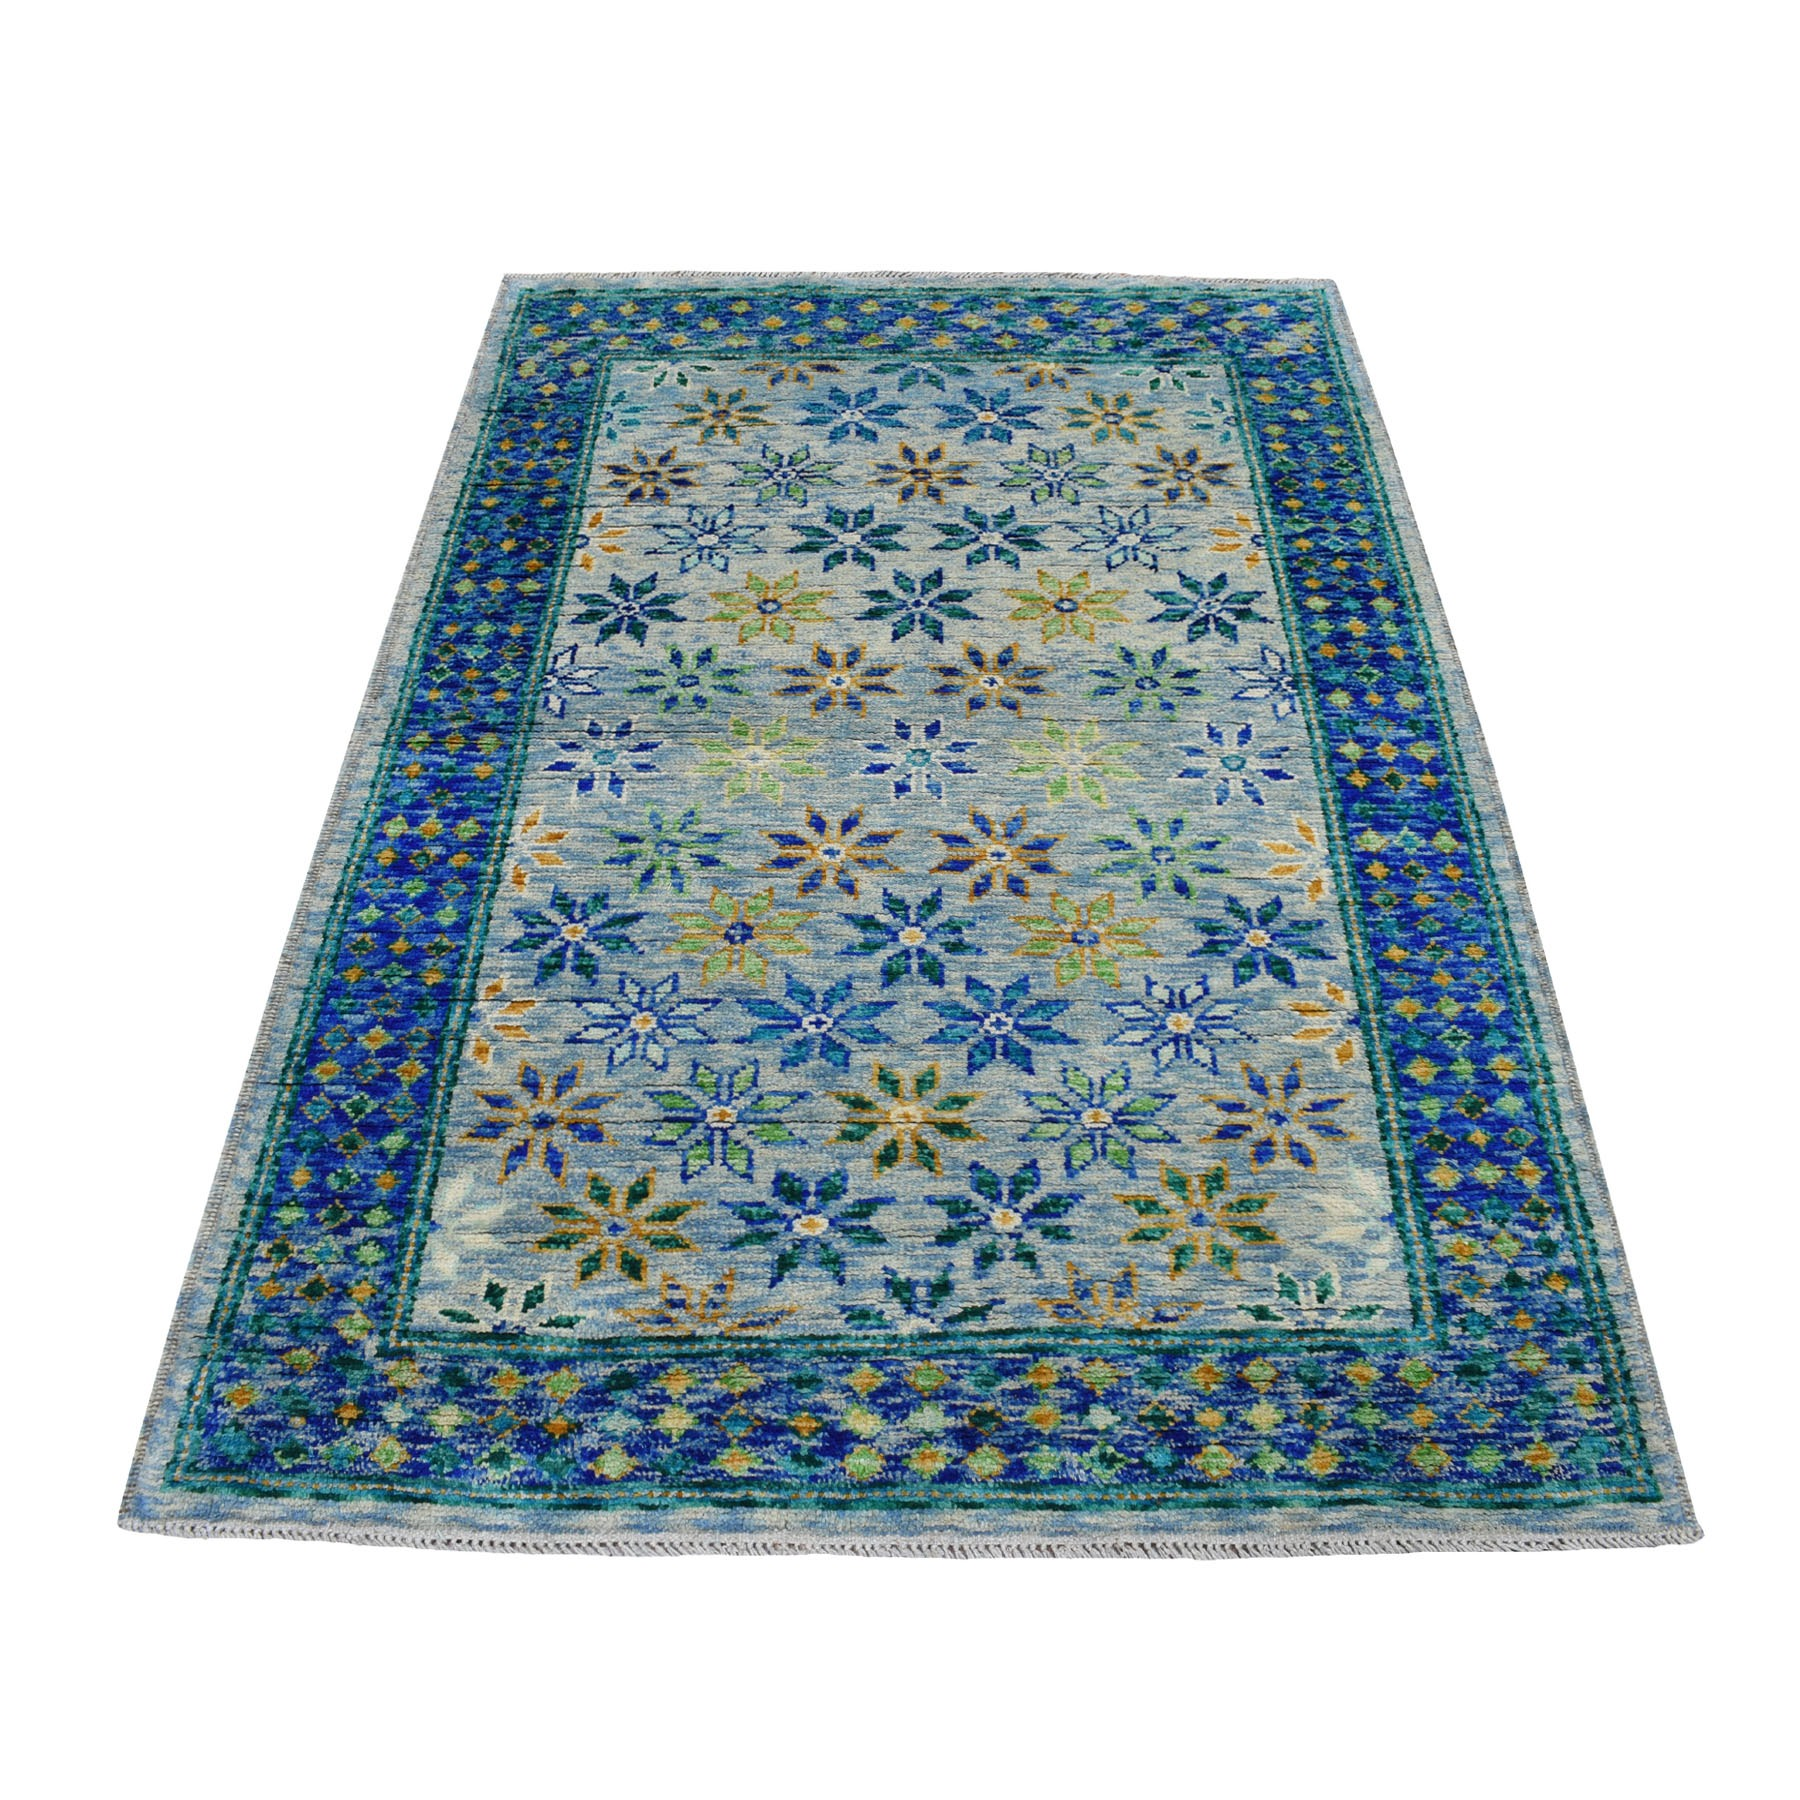 "4'1""x6' Blue All Over Design Colorful Afghan Baluch Pure Wool Hand Knotted Oriental Rug"